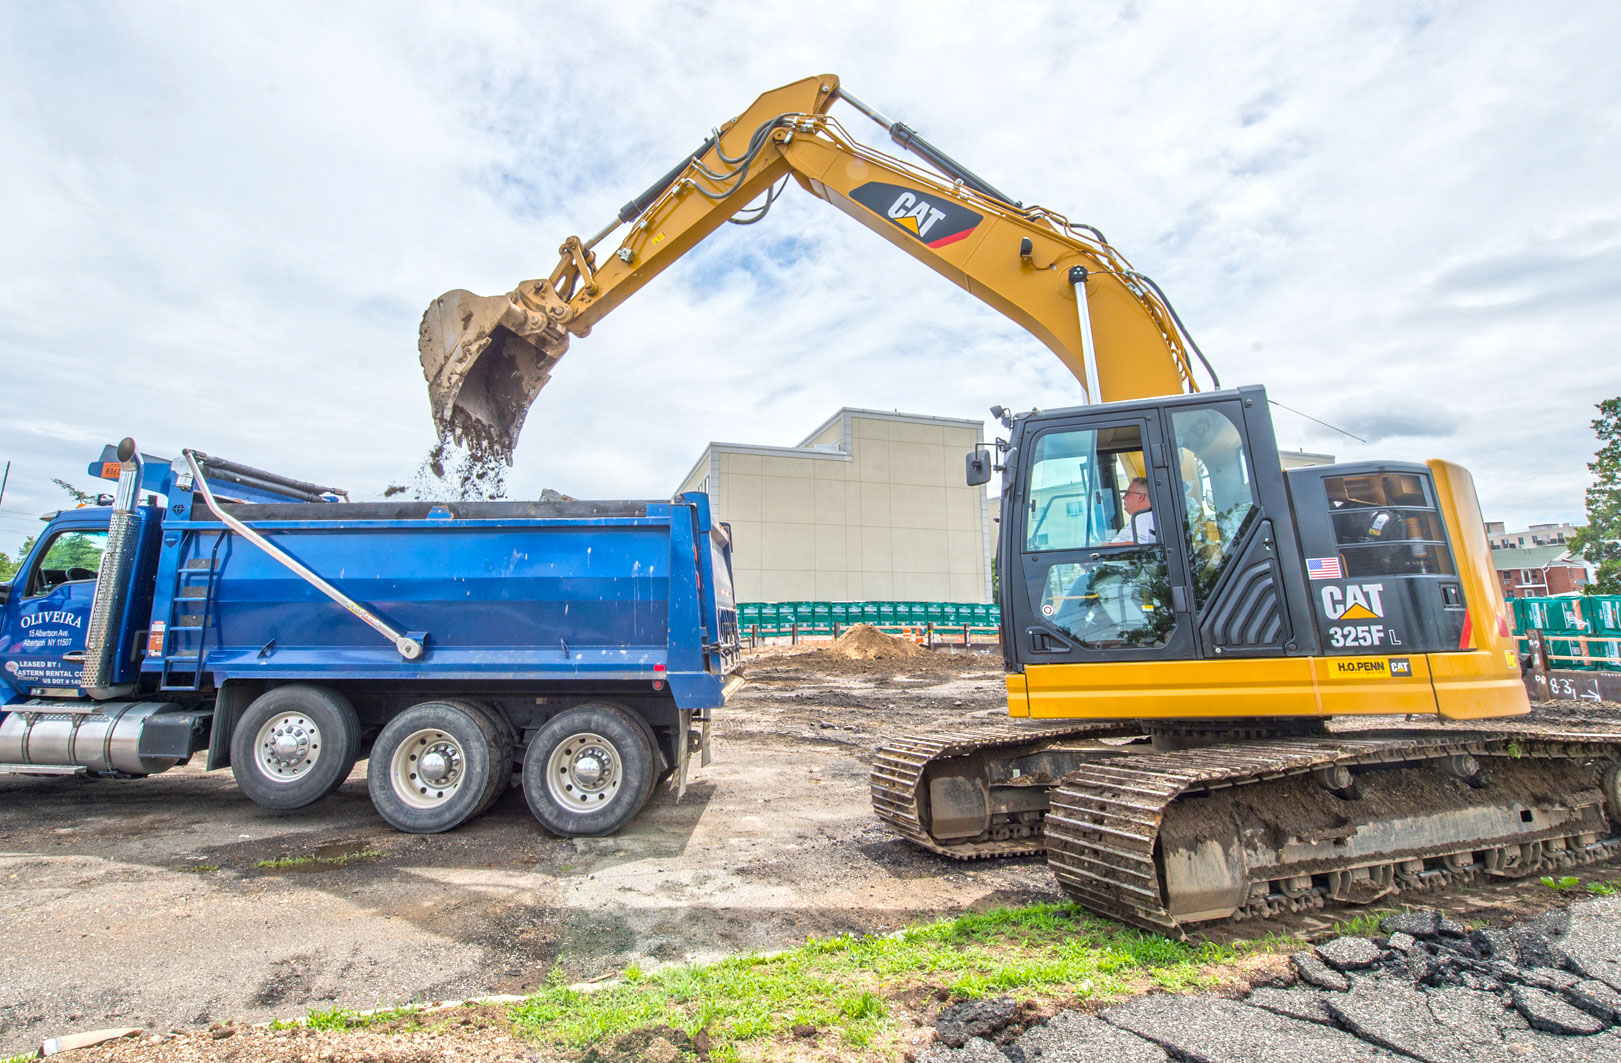 Excavation Begins at Westbury North Parking Structure - 07-03-19